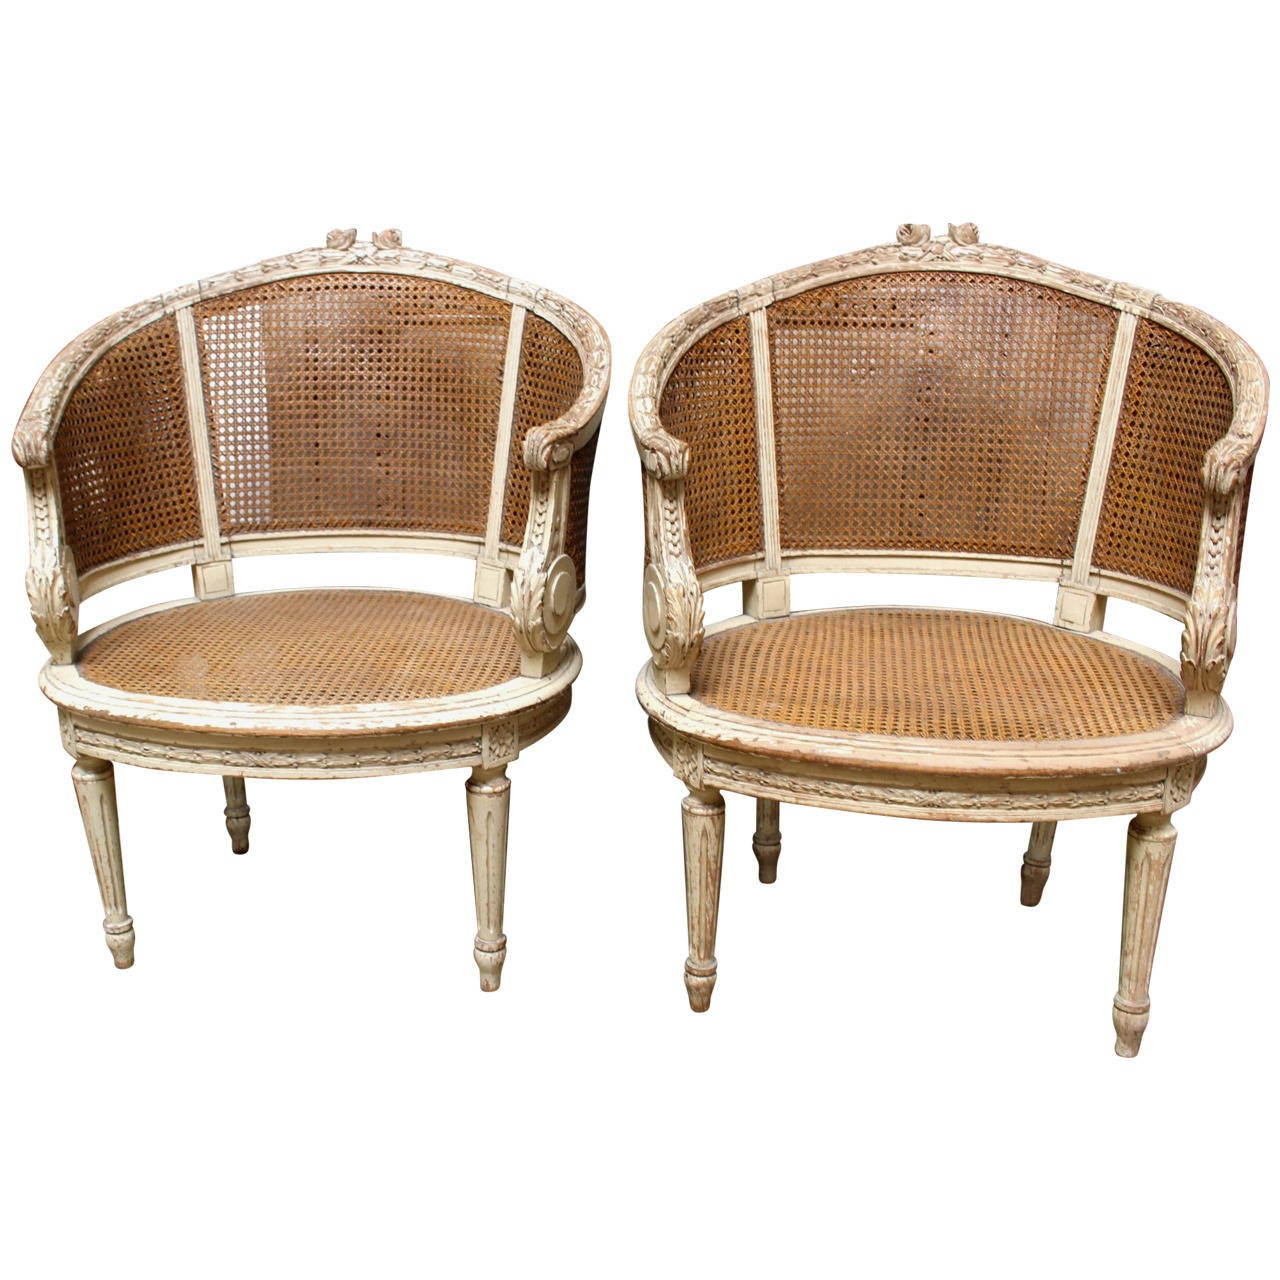 Pair Of French Louis Xvi Style Caned Bergeres In A Painted